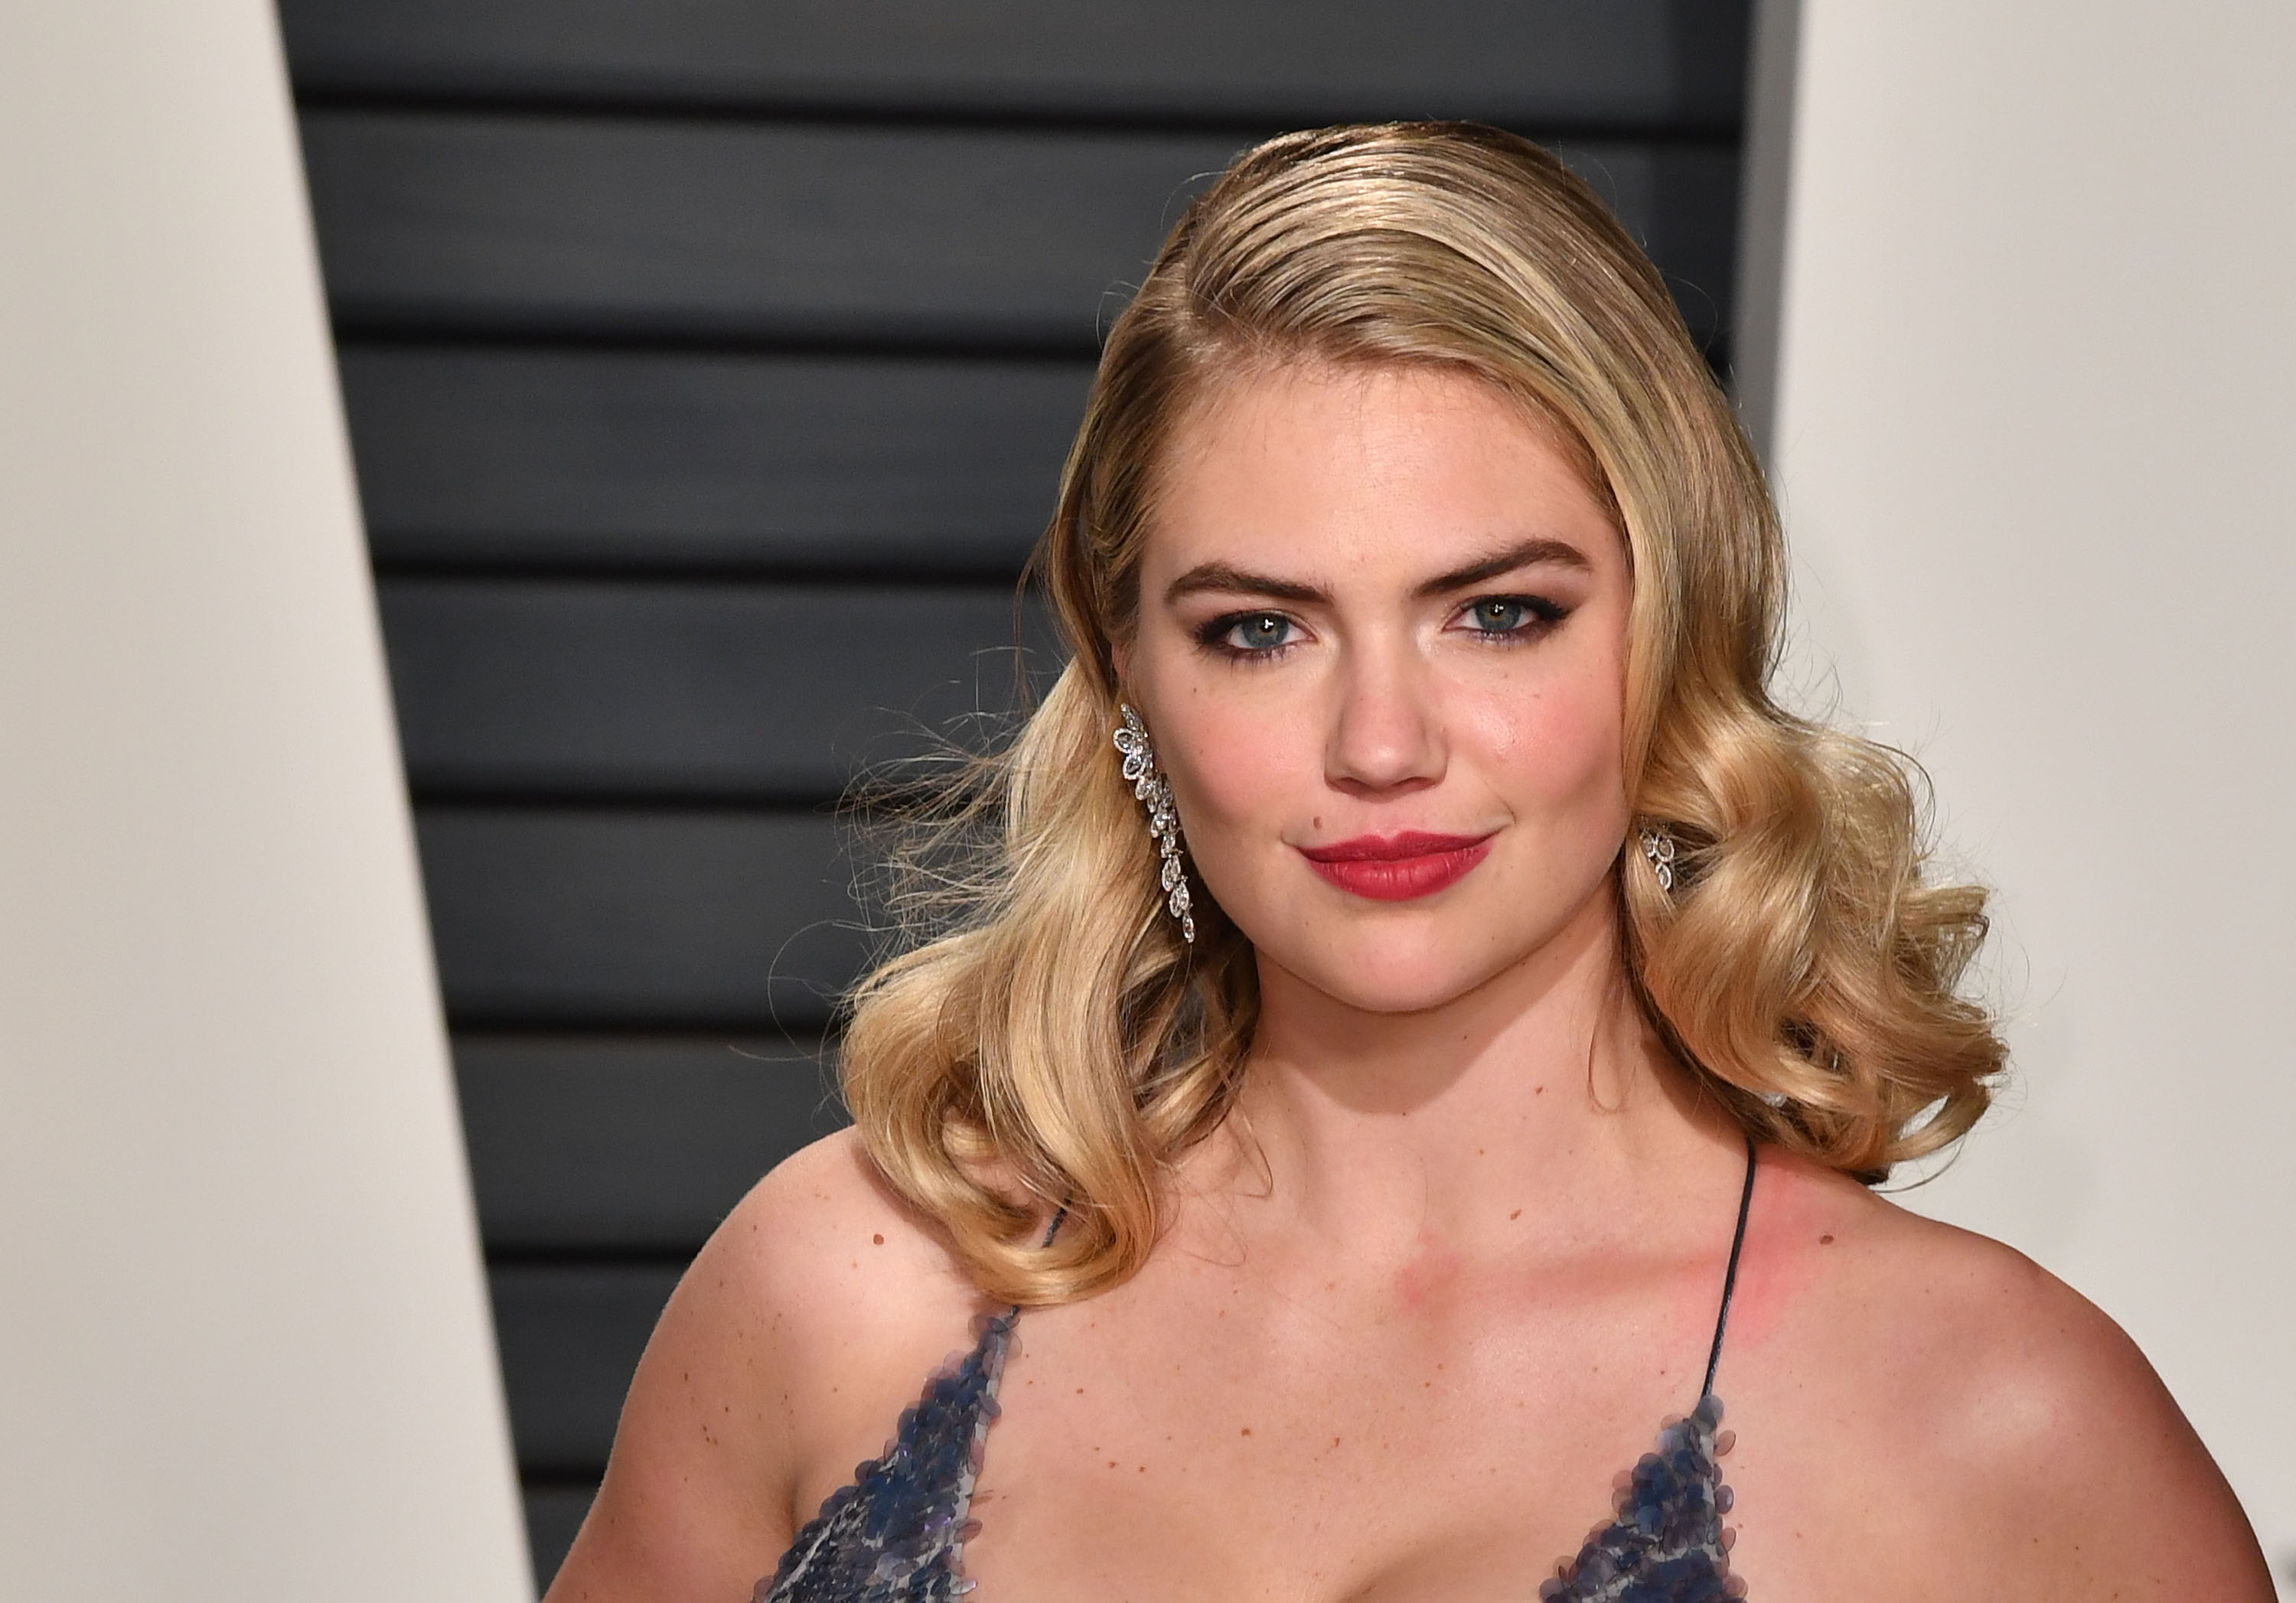 Kate Upton crushed this dance battle